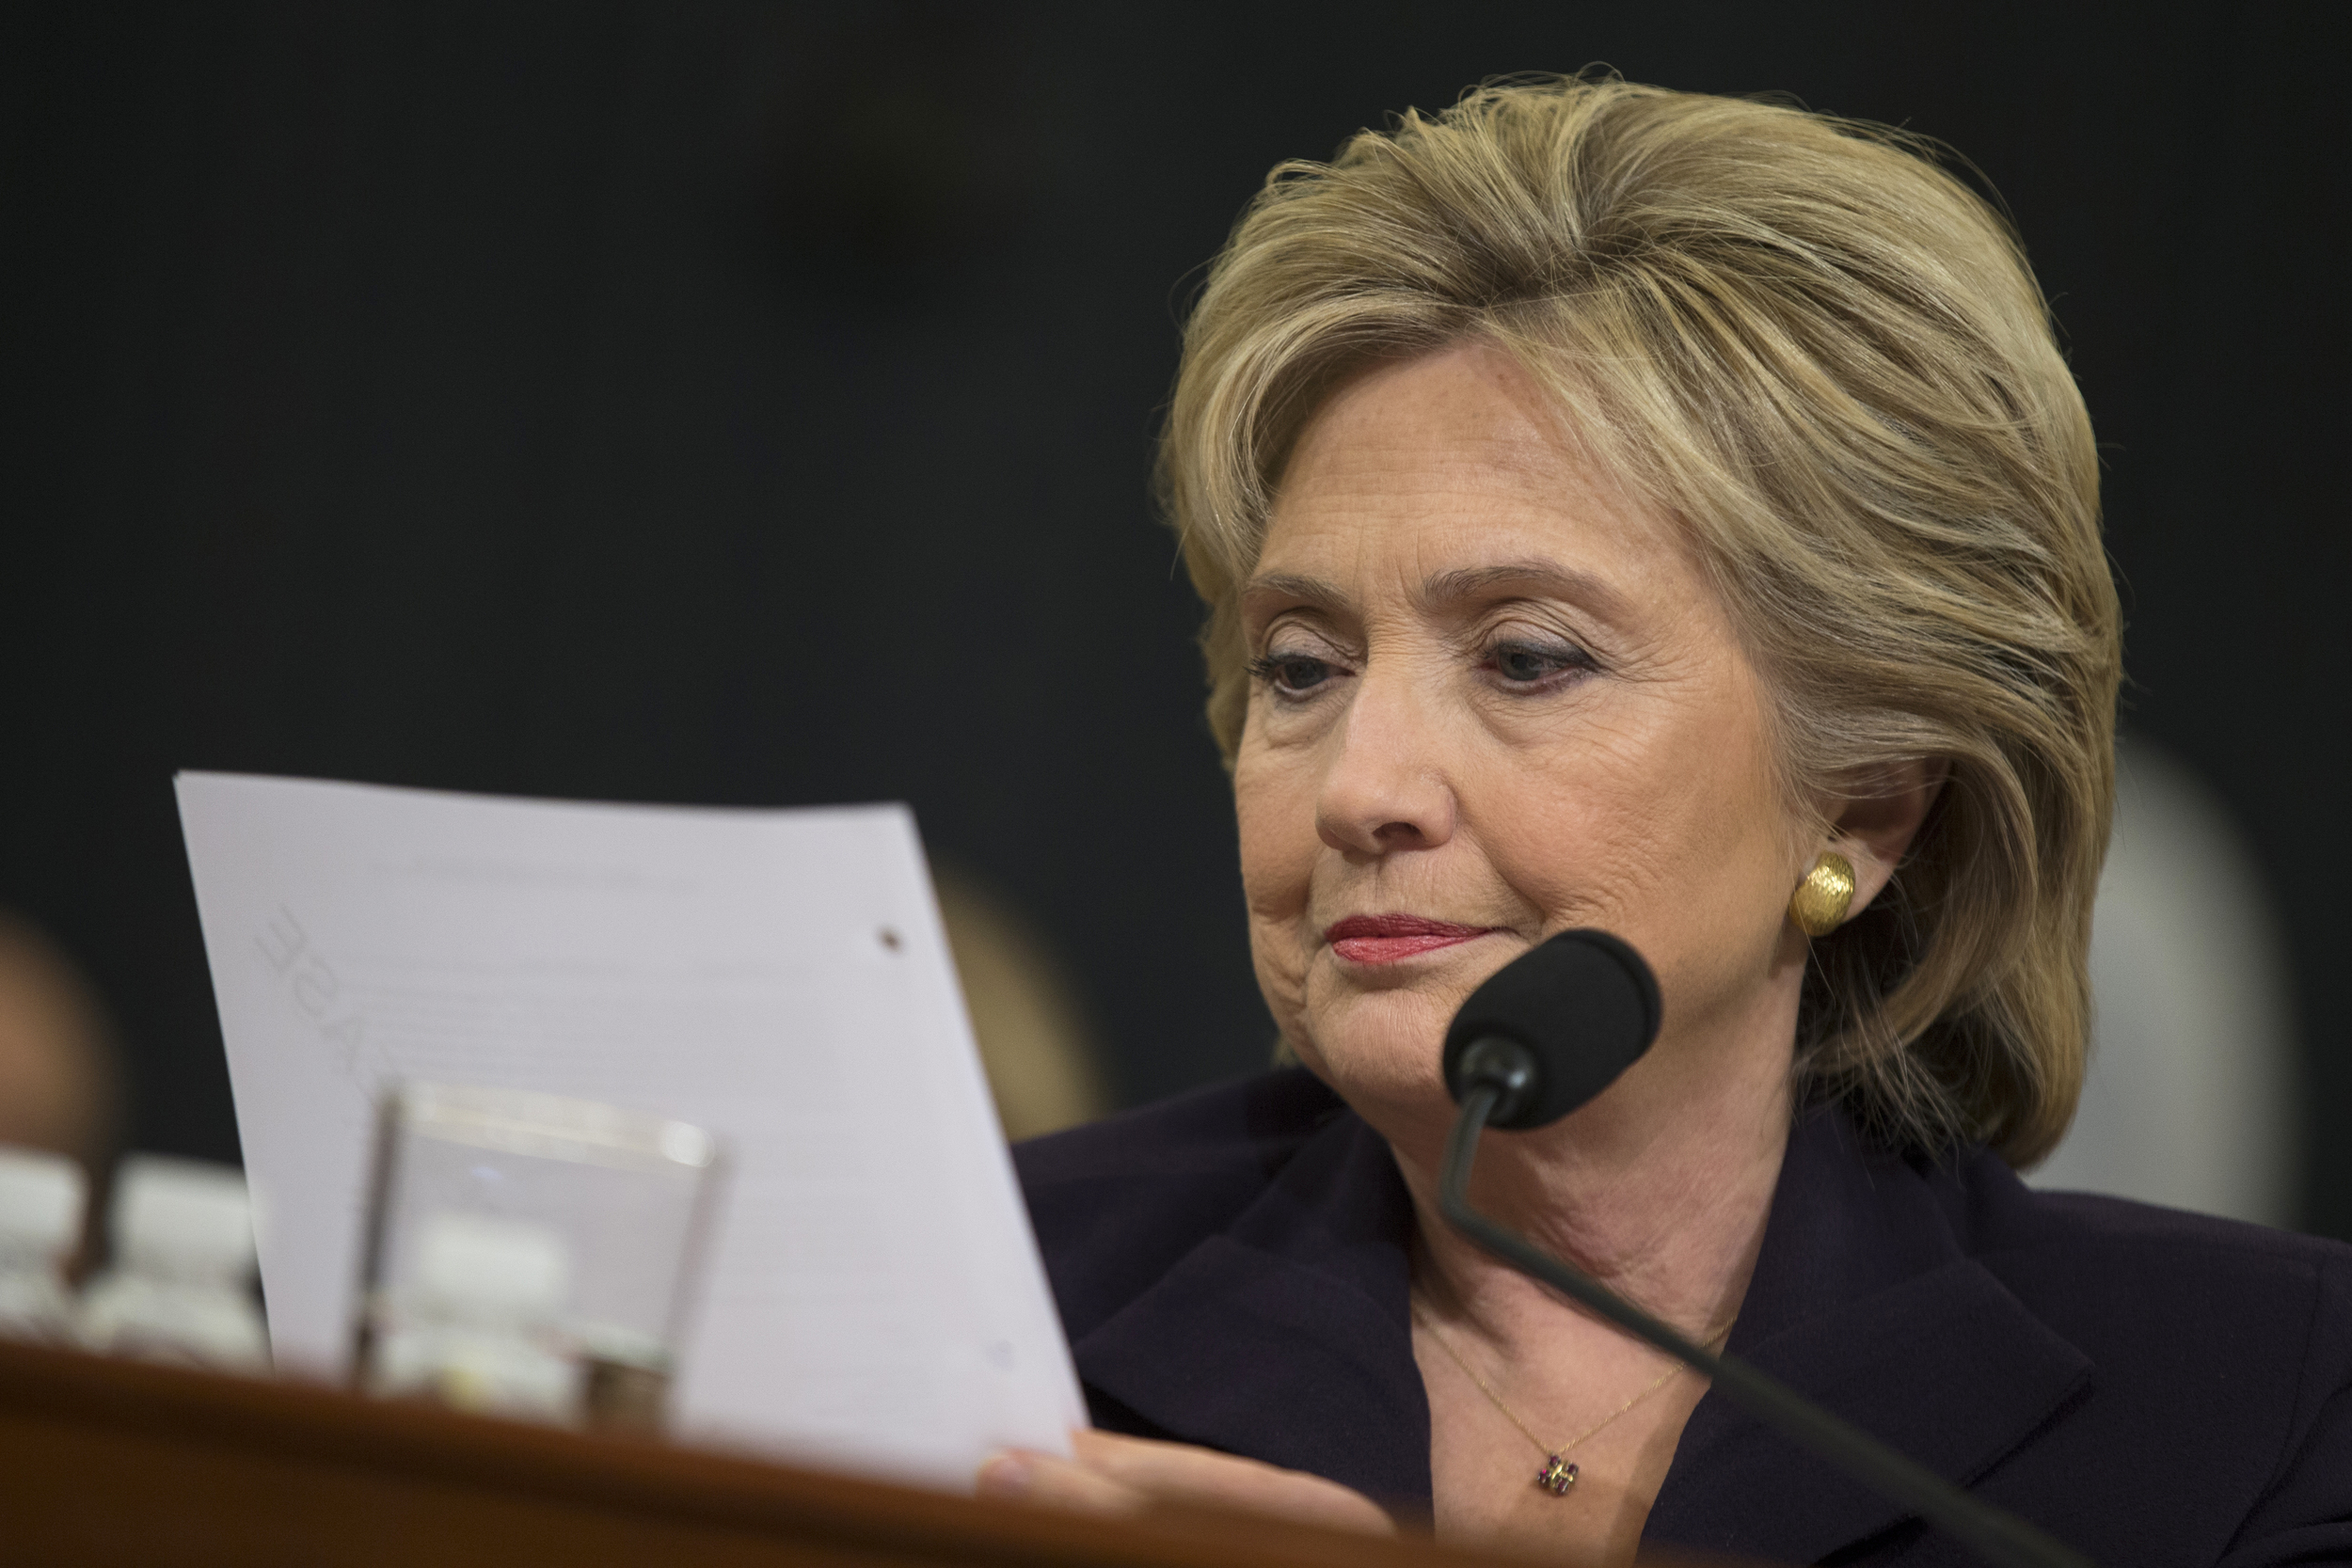 Democratic presidential candidate, former Secretary of State Hillary Rodham Clinton looks at an email sent by Ambassador Chris Stevens during her testimony before the House Benghazi Committee, Thursday, Oct. 22, 2015, on Capitol Hill in Washington. (Evan Vucci/AP)